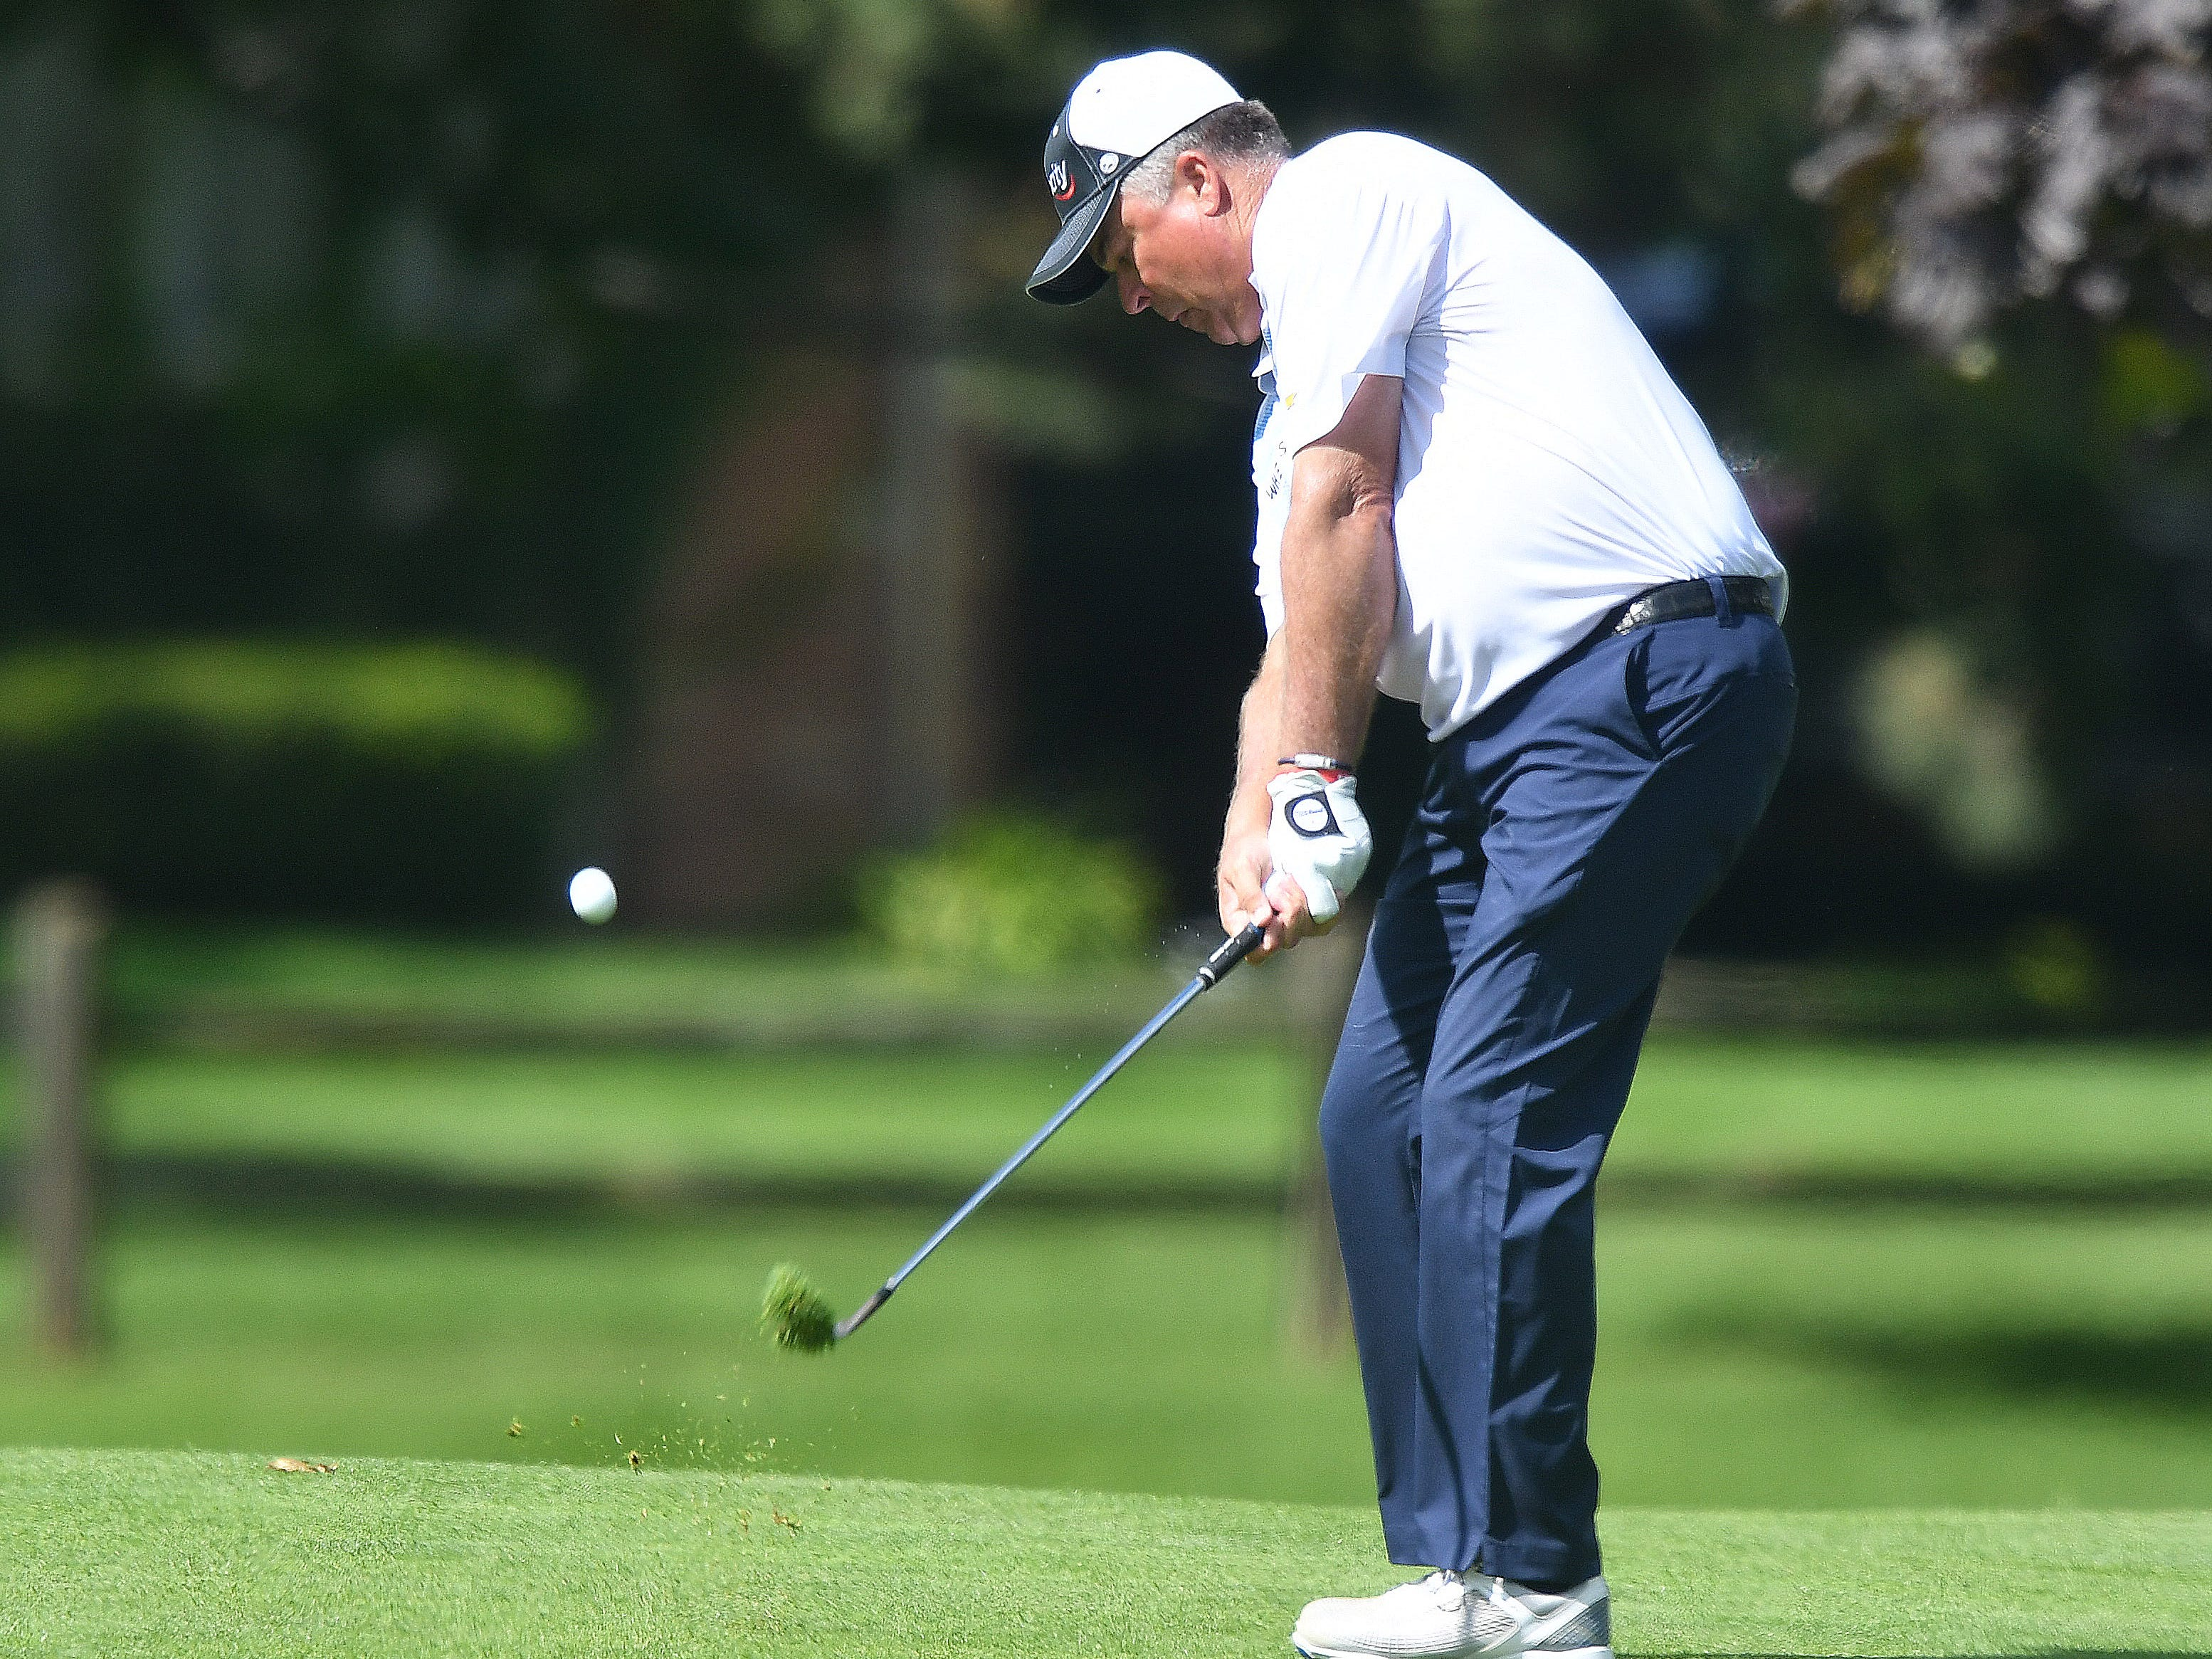 Kenny Perry hits an approach shot on the first hole at the Ally Challenge.